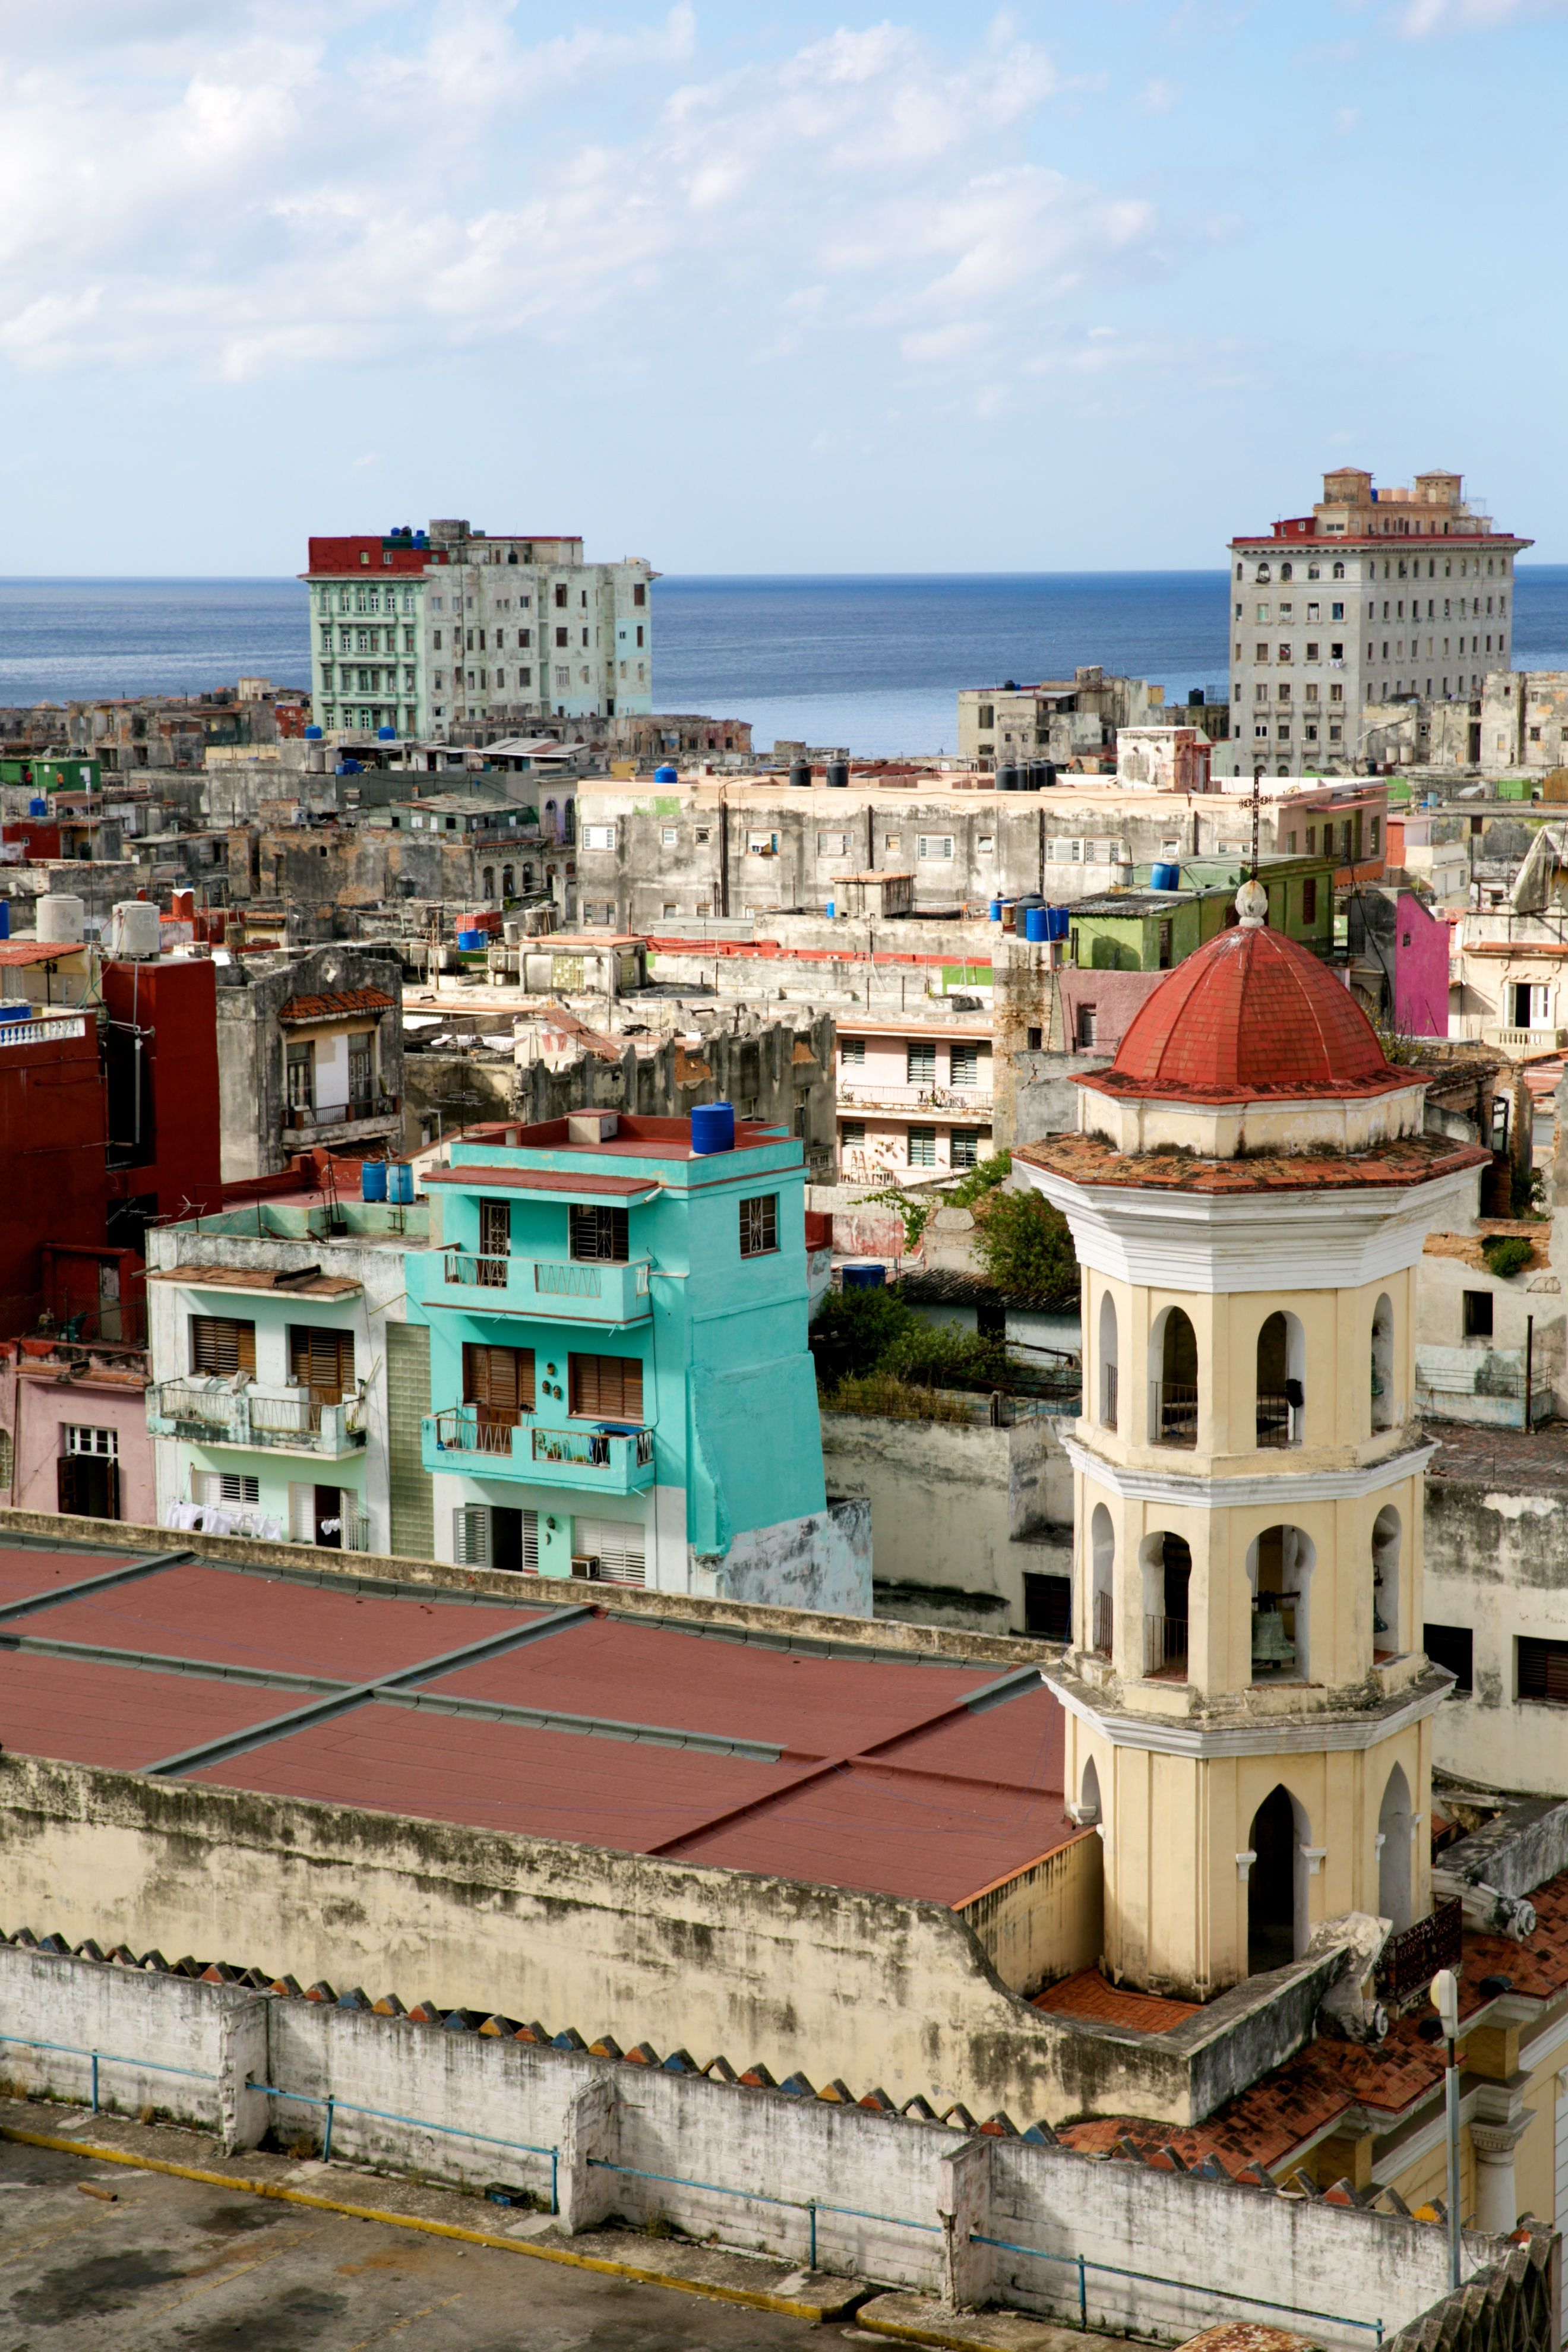 My day to day diary of my trip to Havana Cuba. The real Havana, not just the pretty colorful photos, although Langré Edwards captured it all very well.